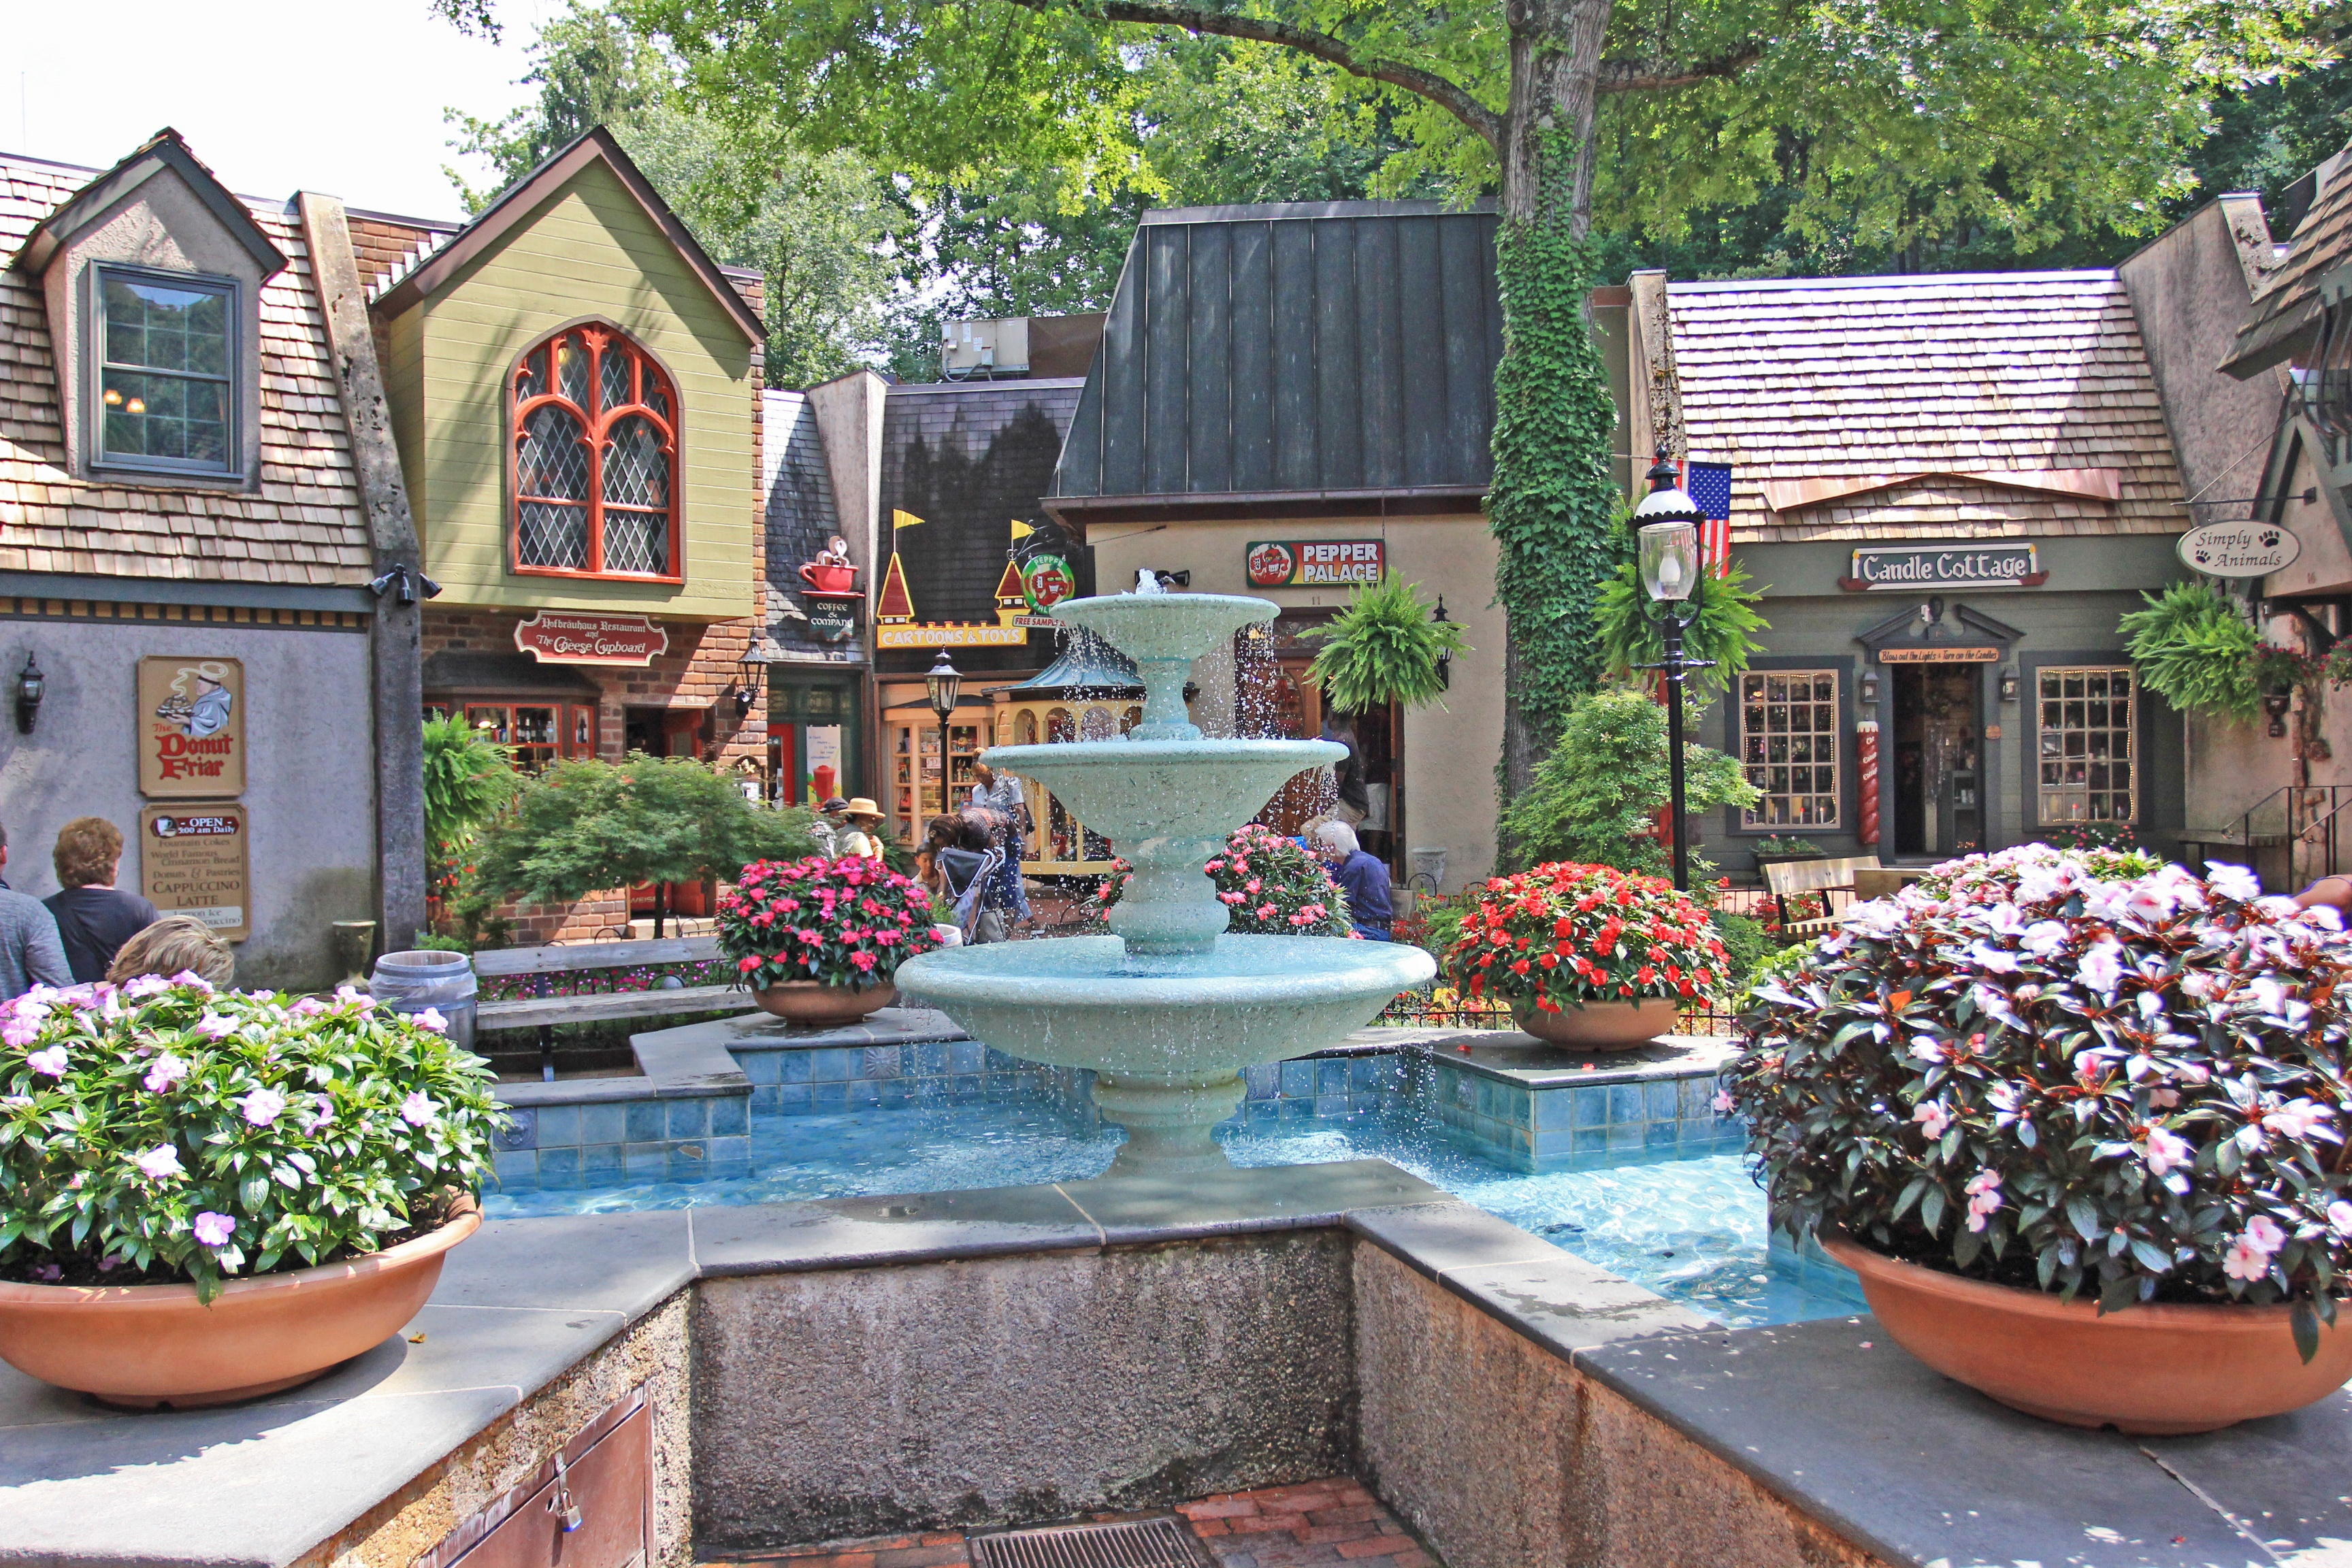 The Village Shops in Gatlinburg